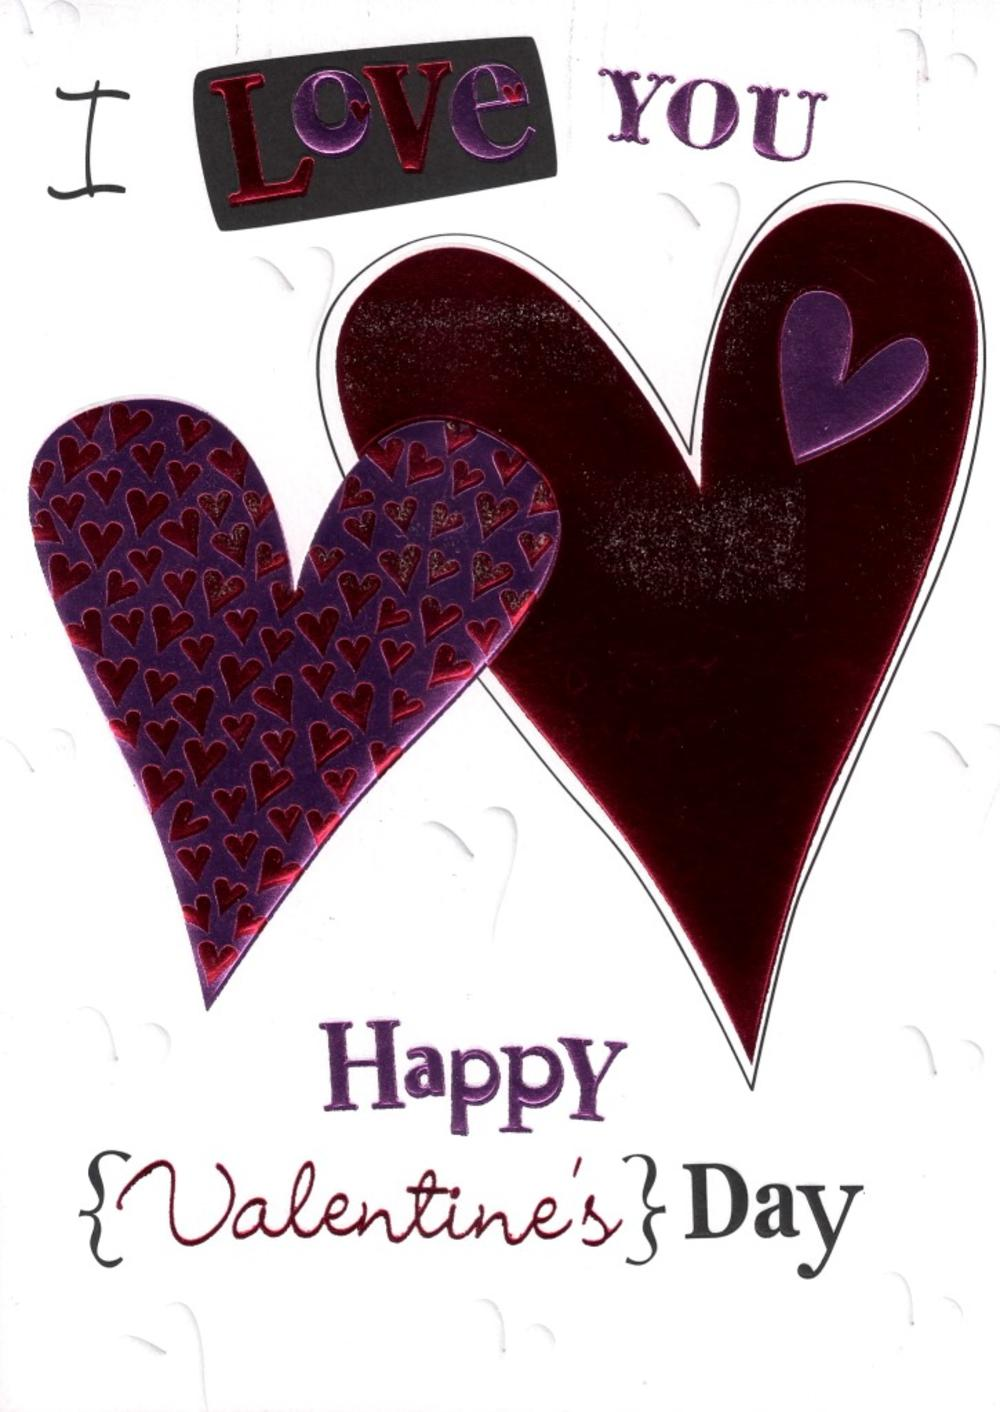 I Love You With All My Heart  Valentine's Card